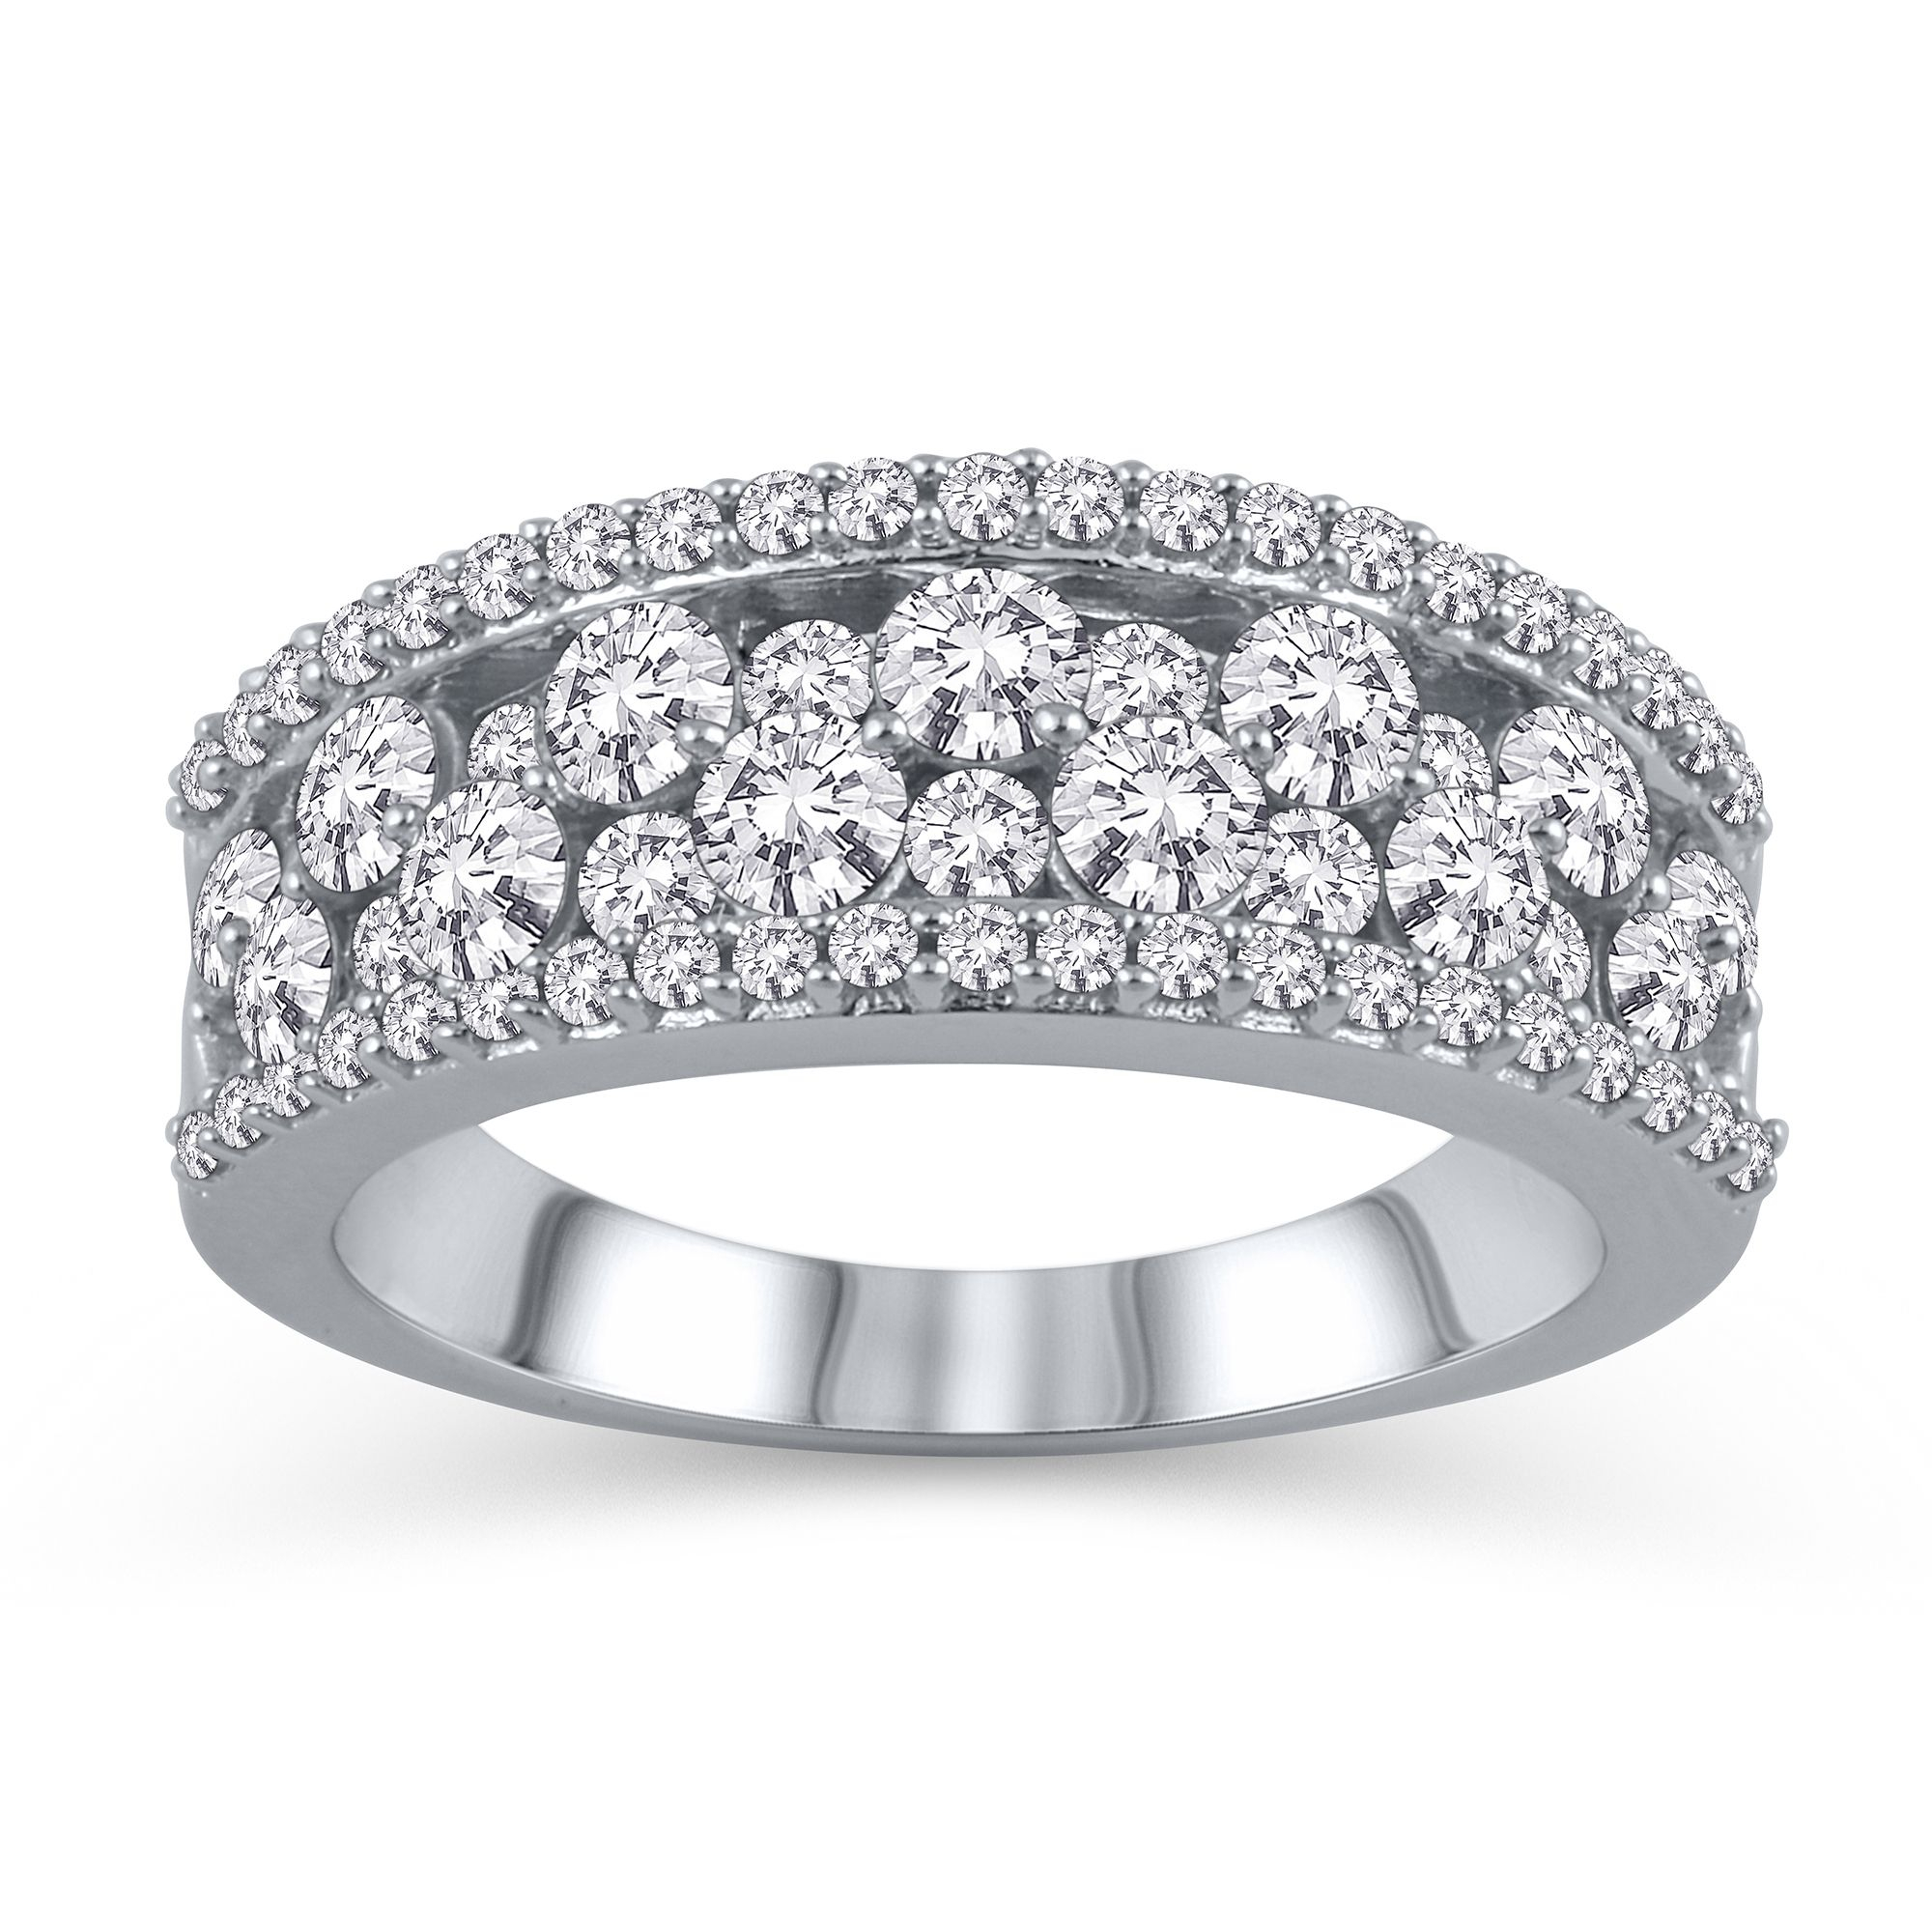 Featured Photo of Diamond Layered Anniversary Ring In White Gold